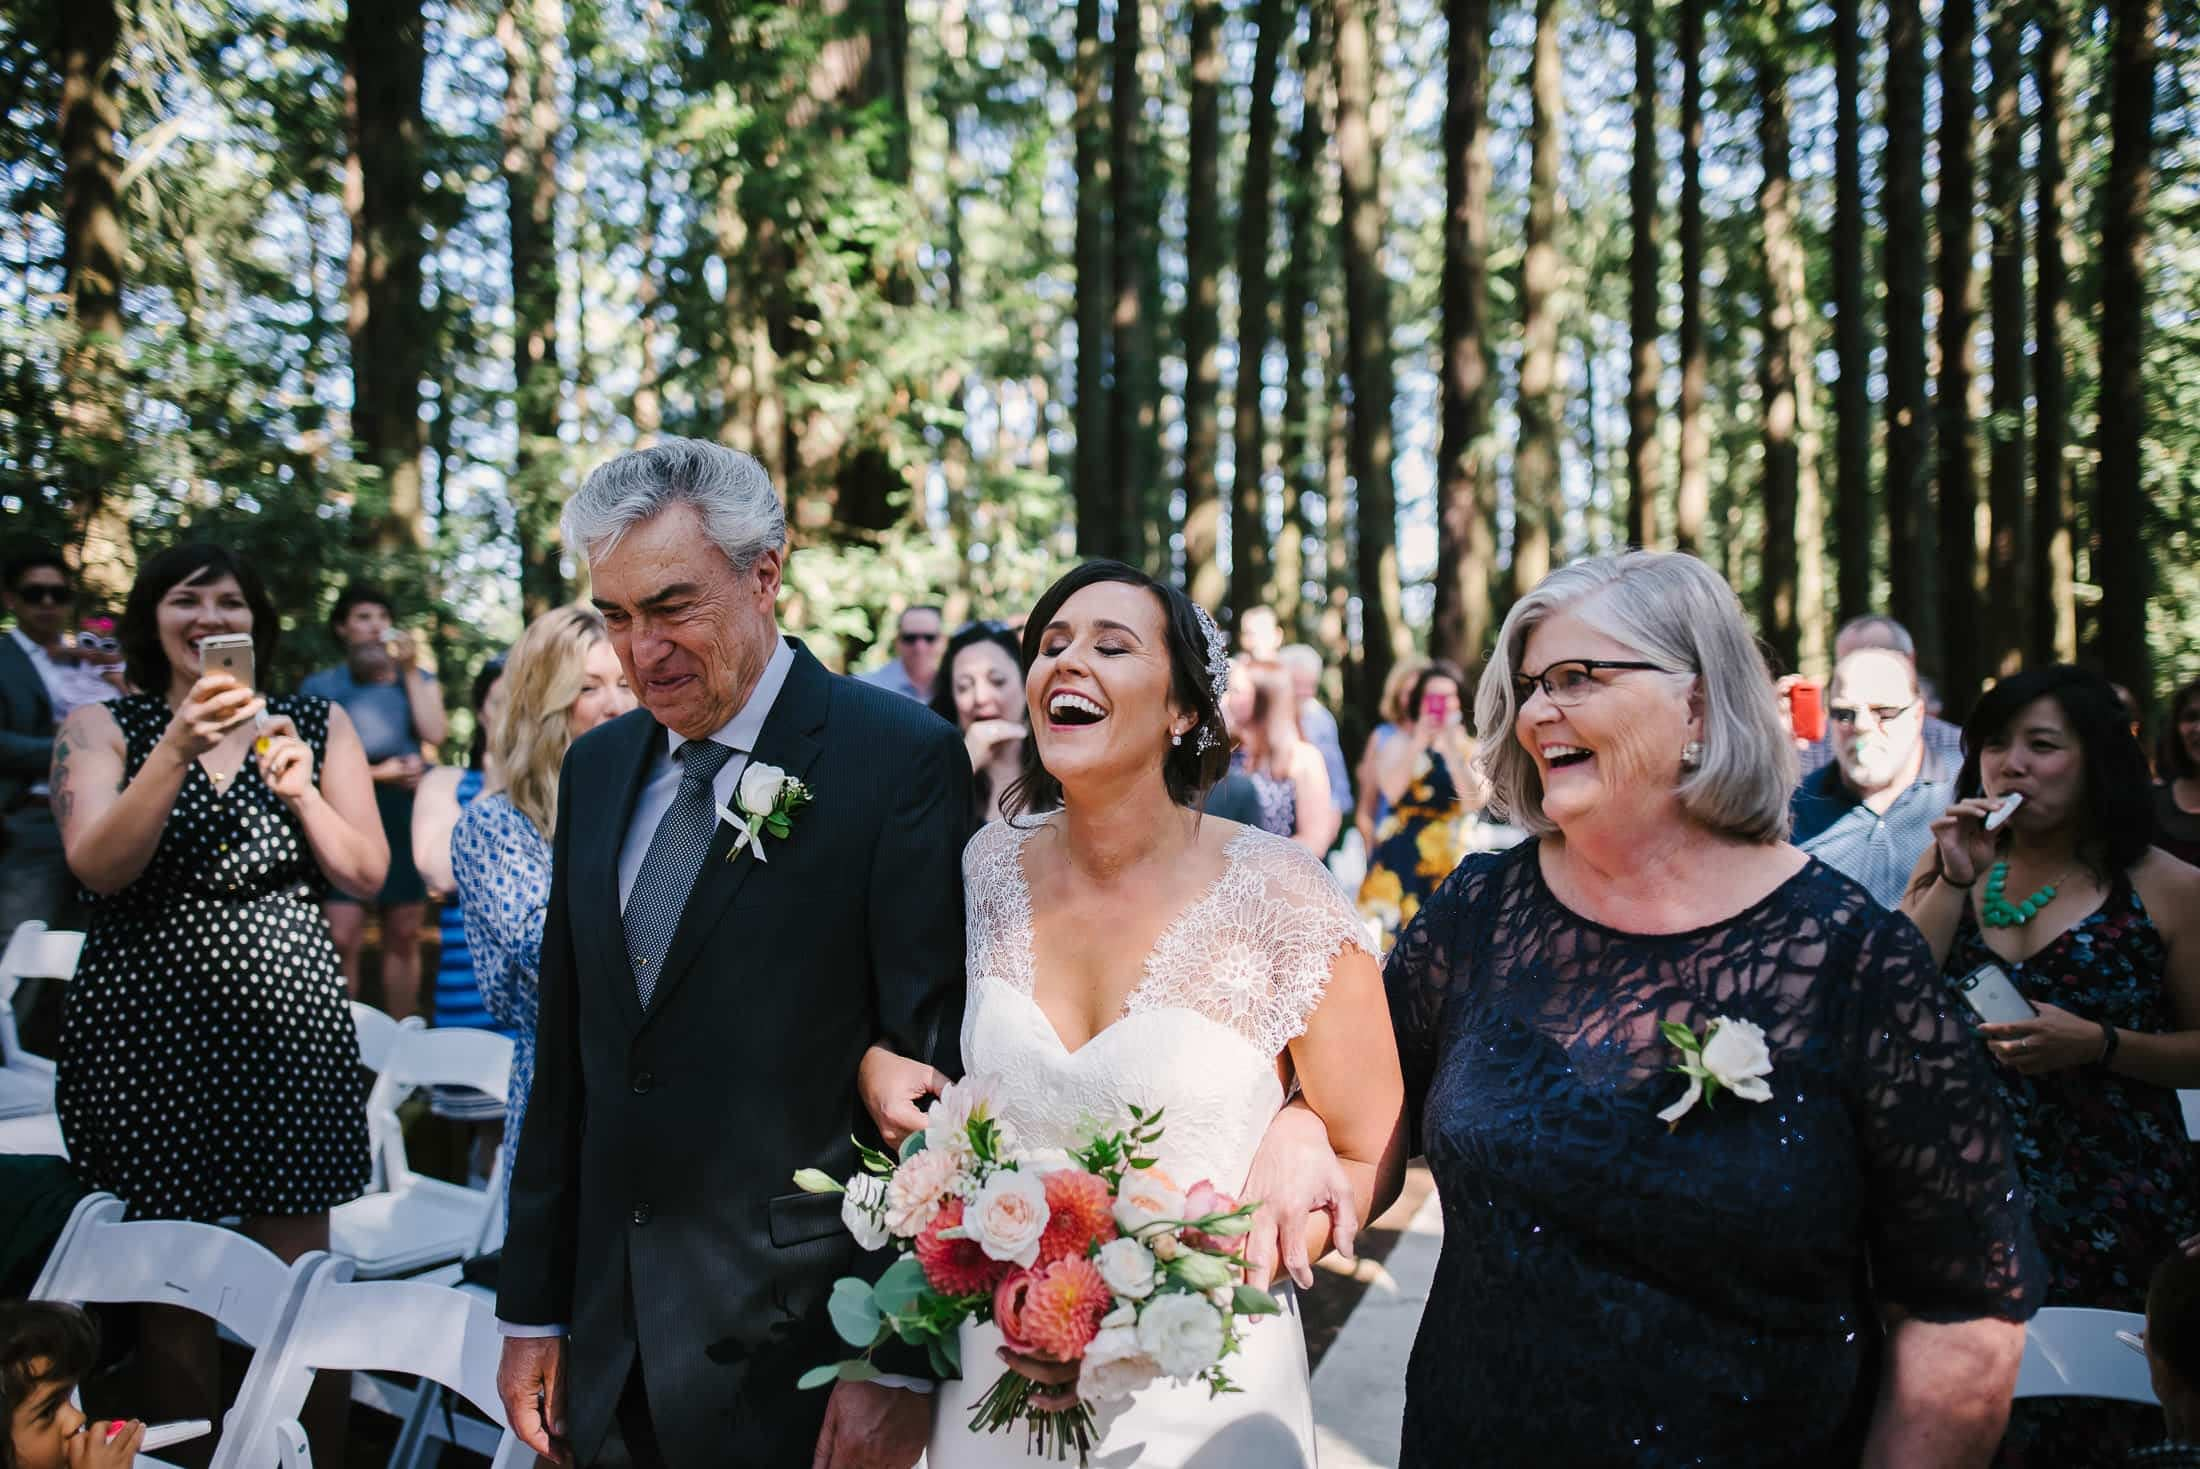 Robert's Regional Park Wedding